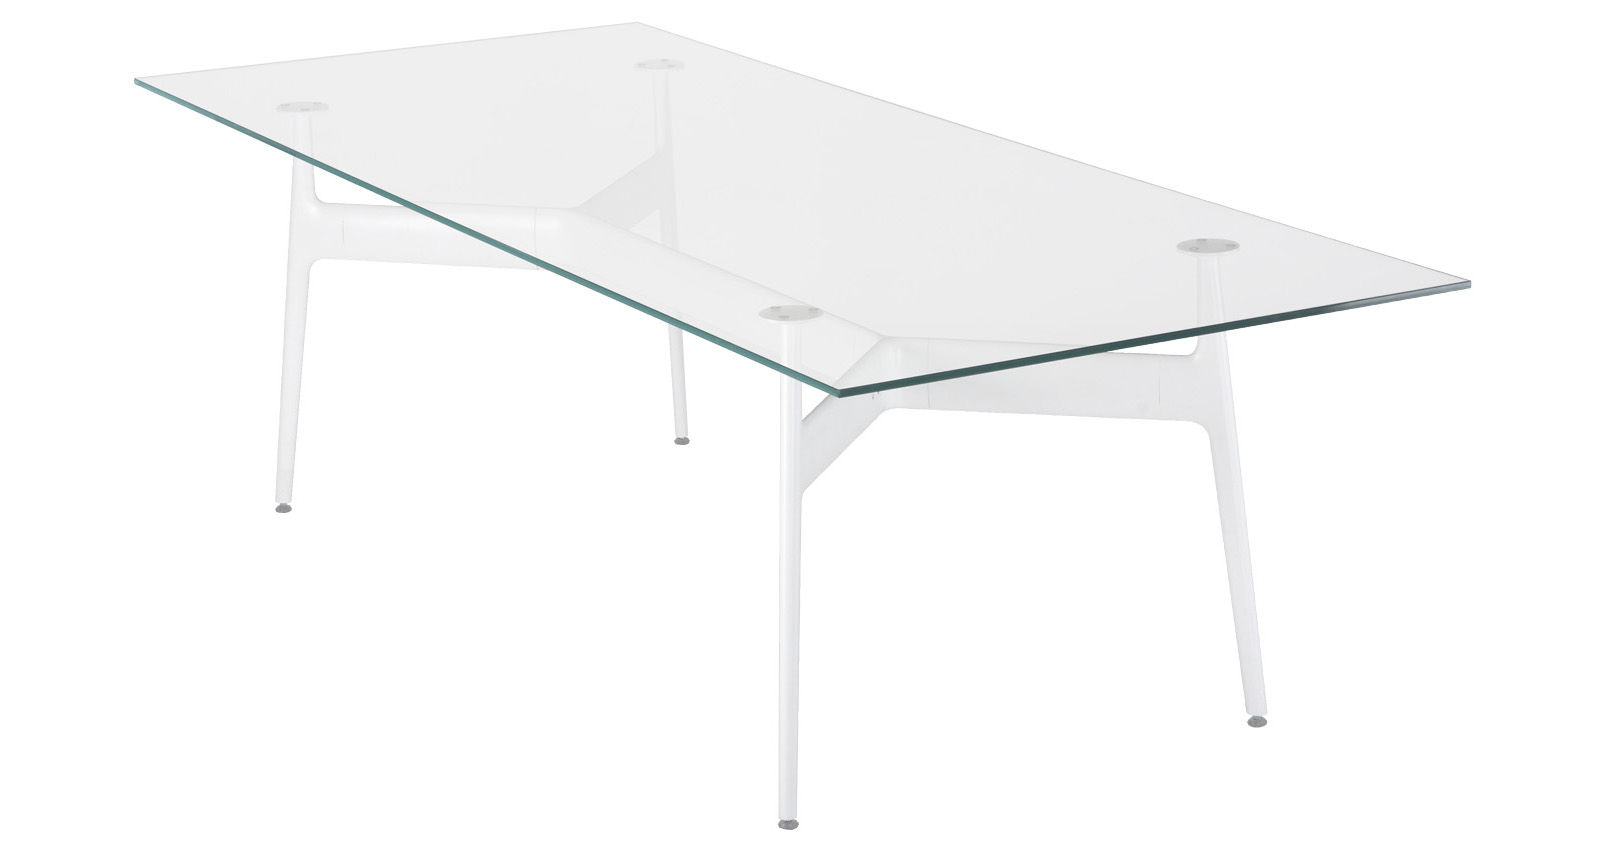 Back to school - Office furniture - Aracne Rectangular table - 190 x 100 cm - Glass top by Eumenes - White structure / Ultra-clear glass top - Aluminium, Glass